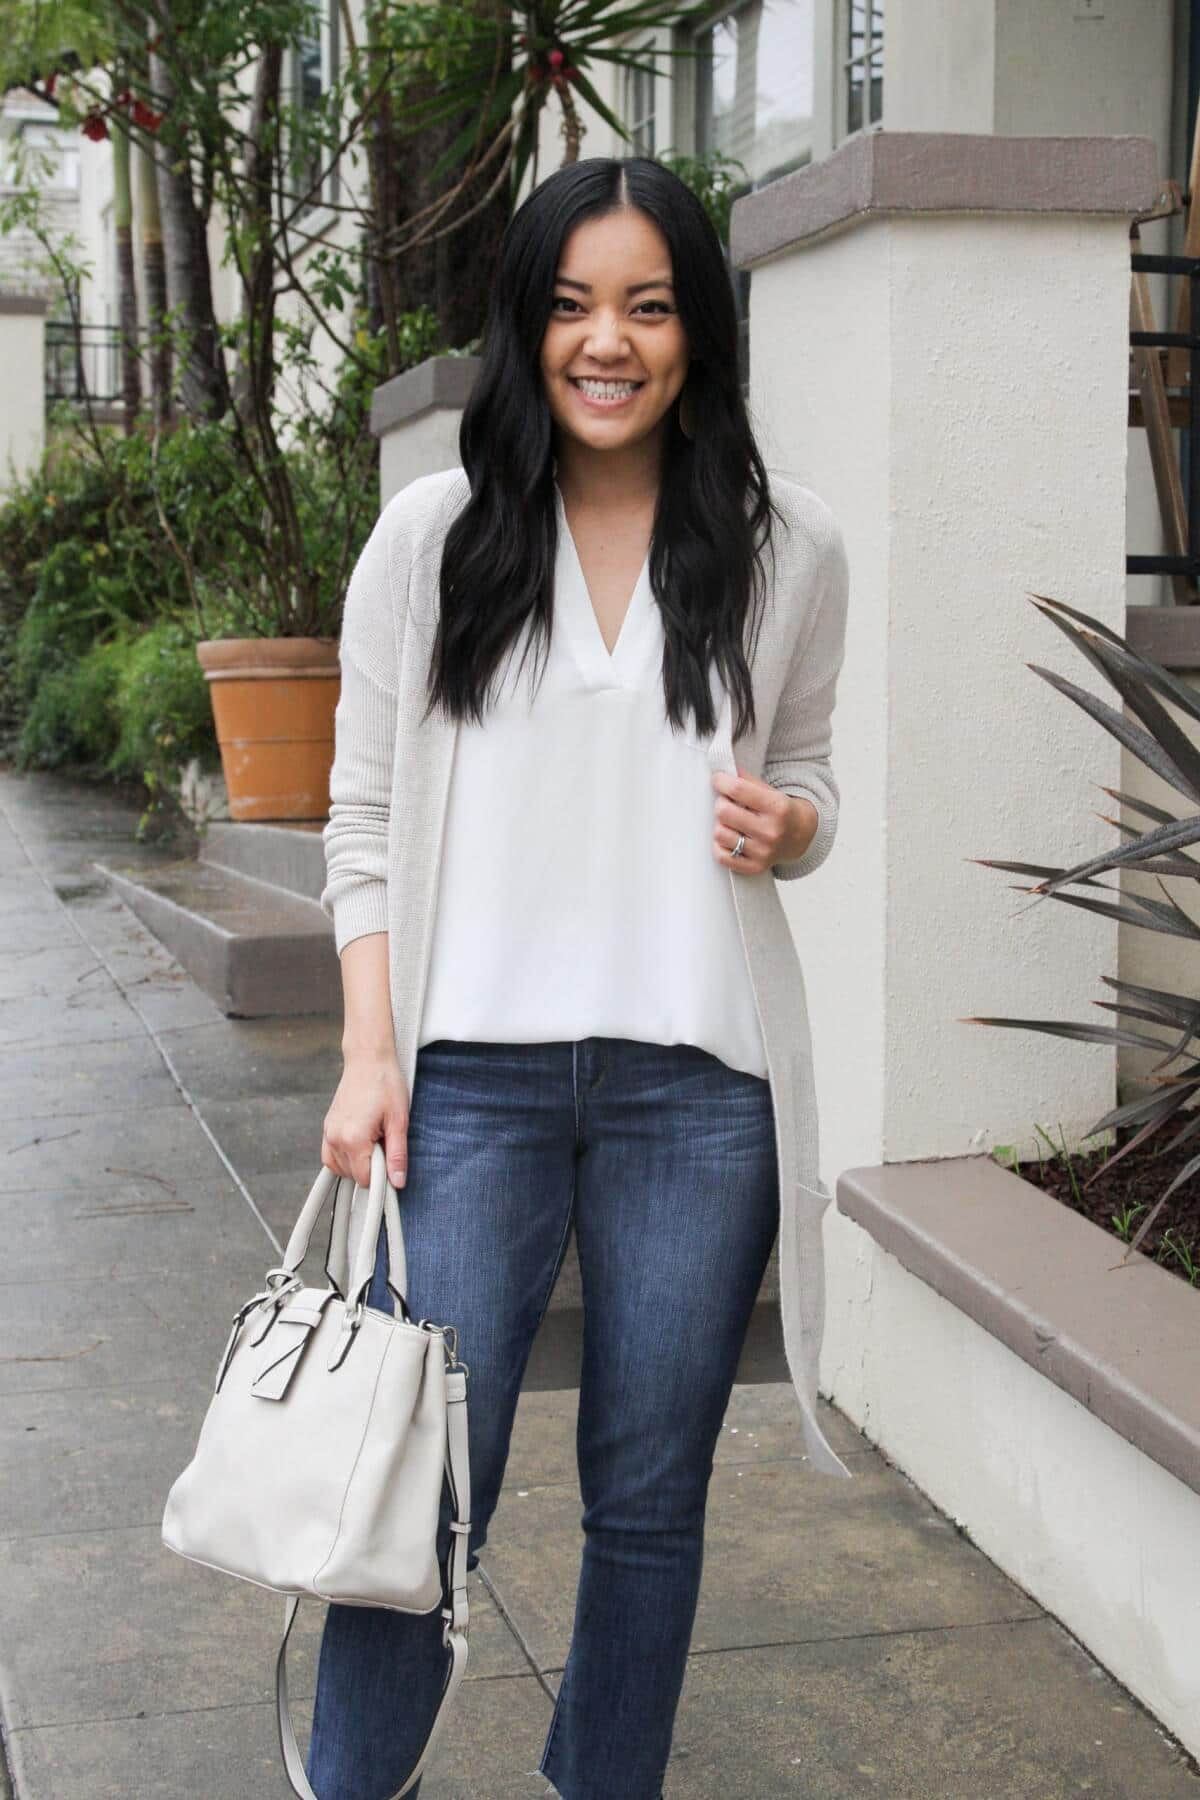 comfy elevated casual outfit for spring: white tunic, light cardigan, jeans, white bag